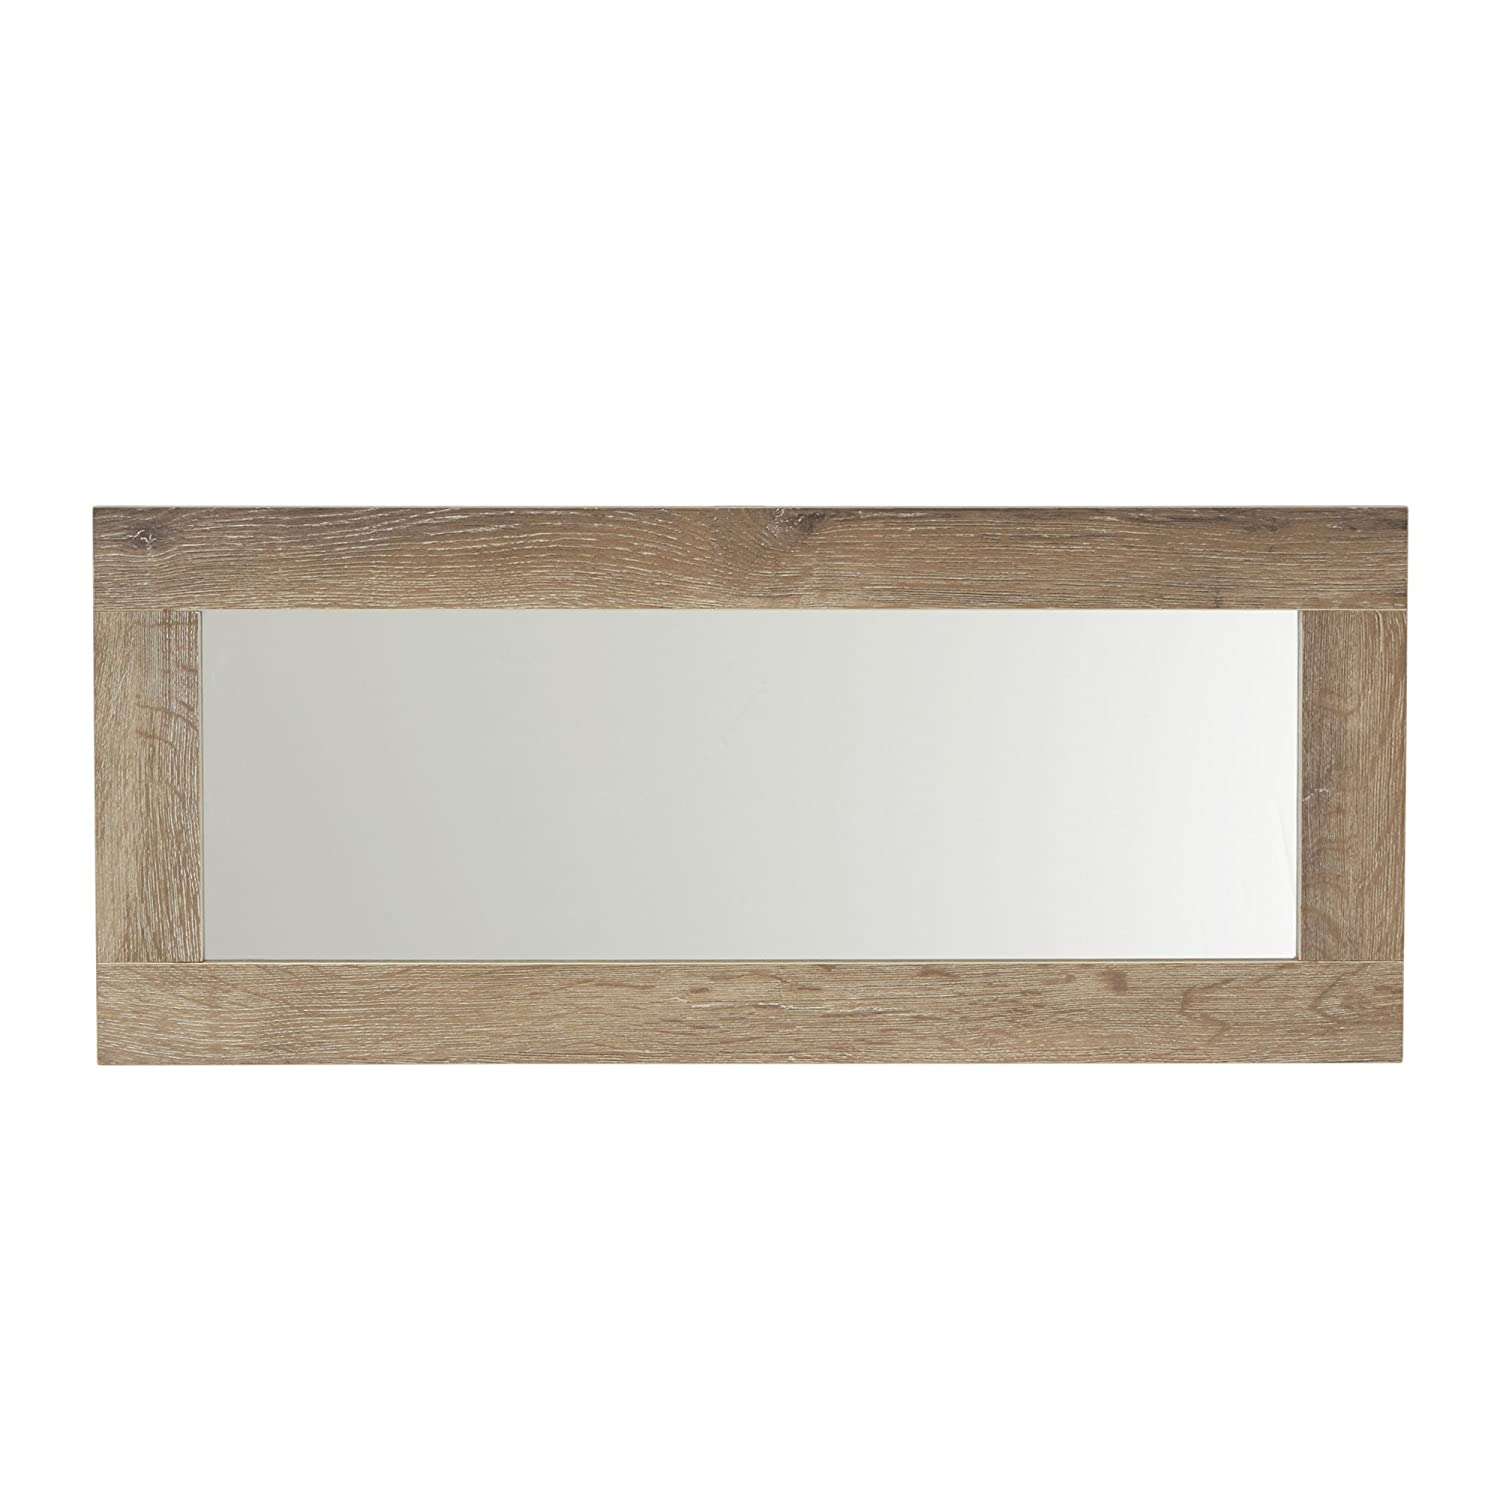 Household Essentials 8078-1 Ashwood Rectangular Wall Mirror